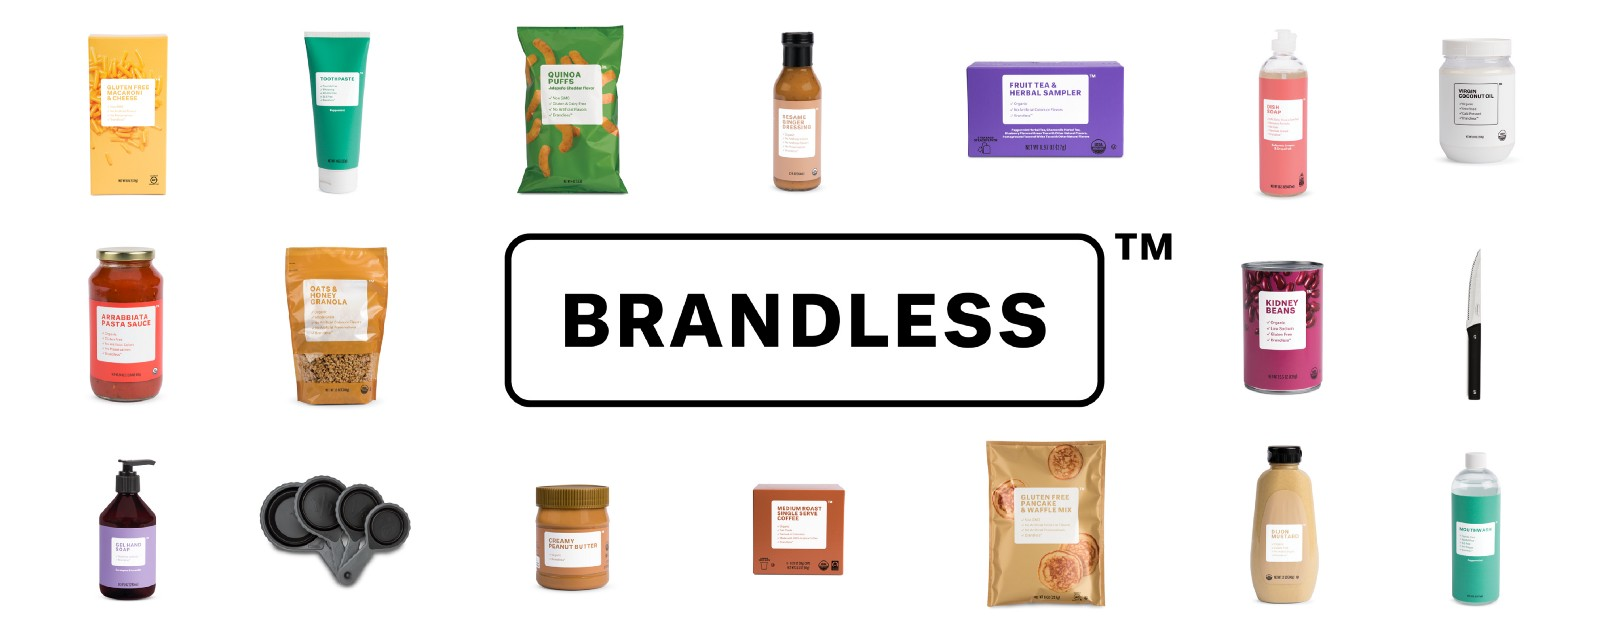 Brandless: Online grocery shopping made more affordable and